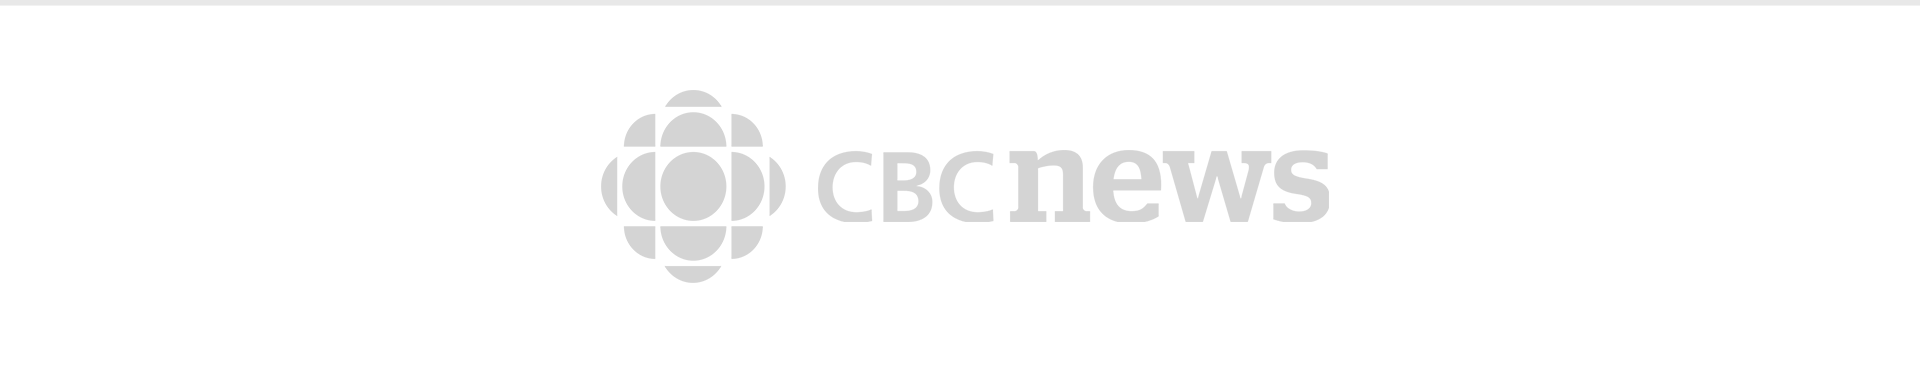 cbcl-foot